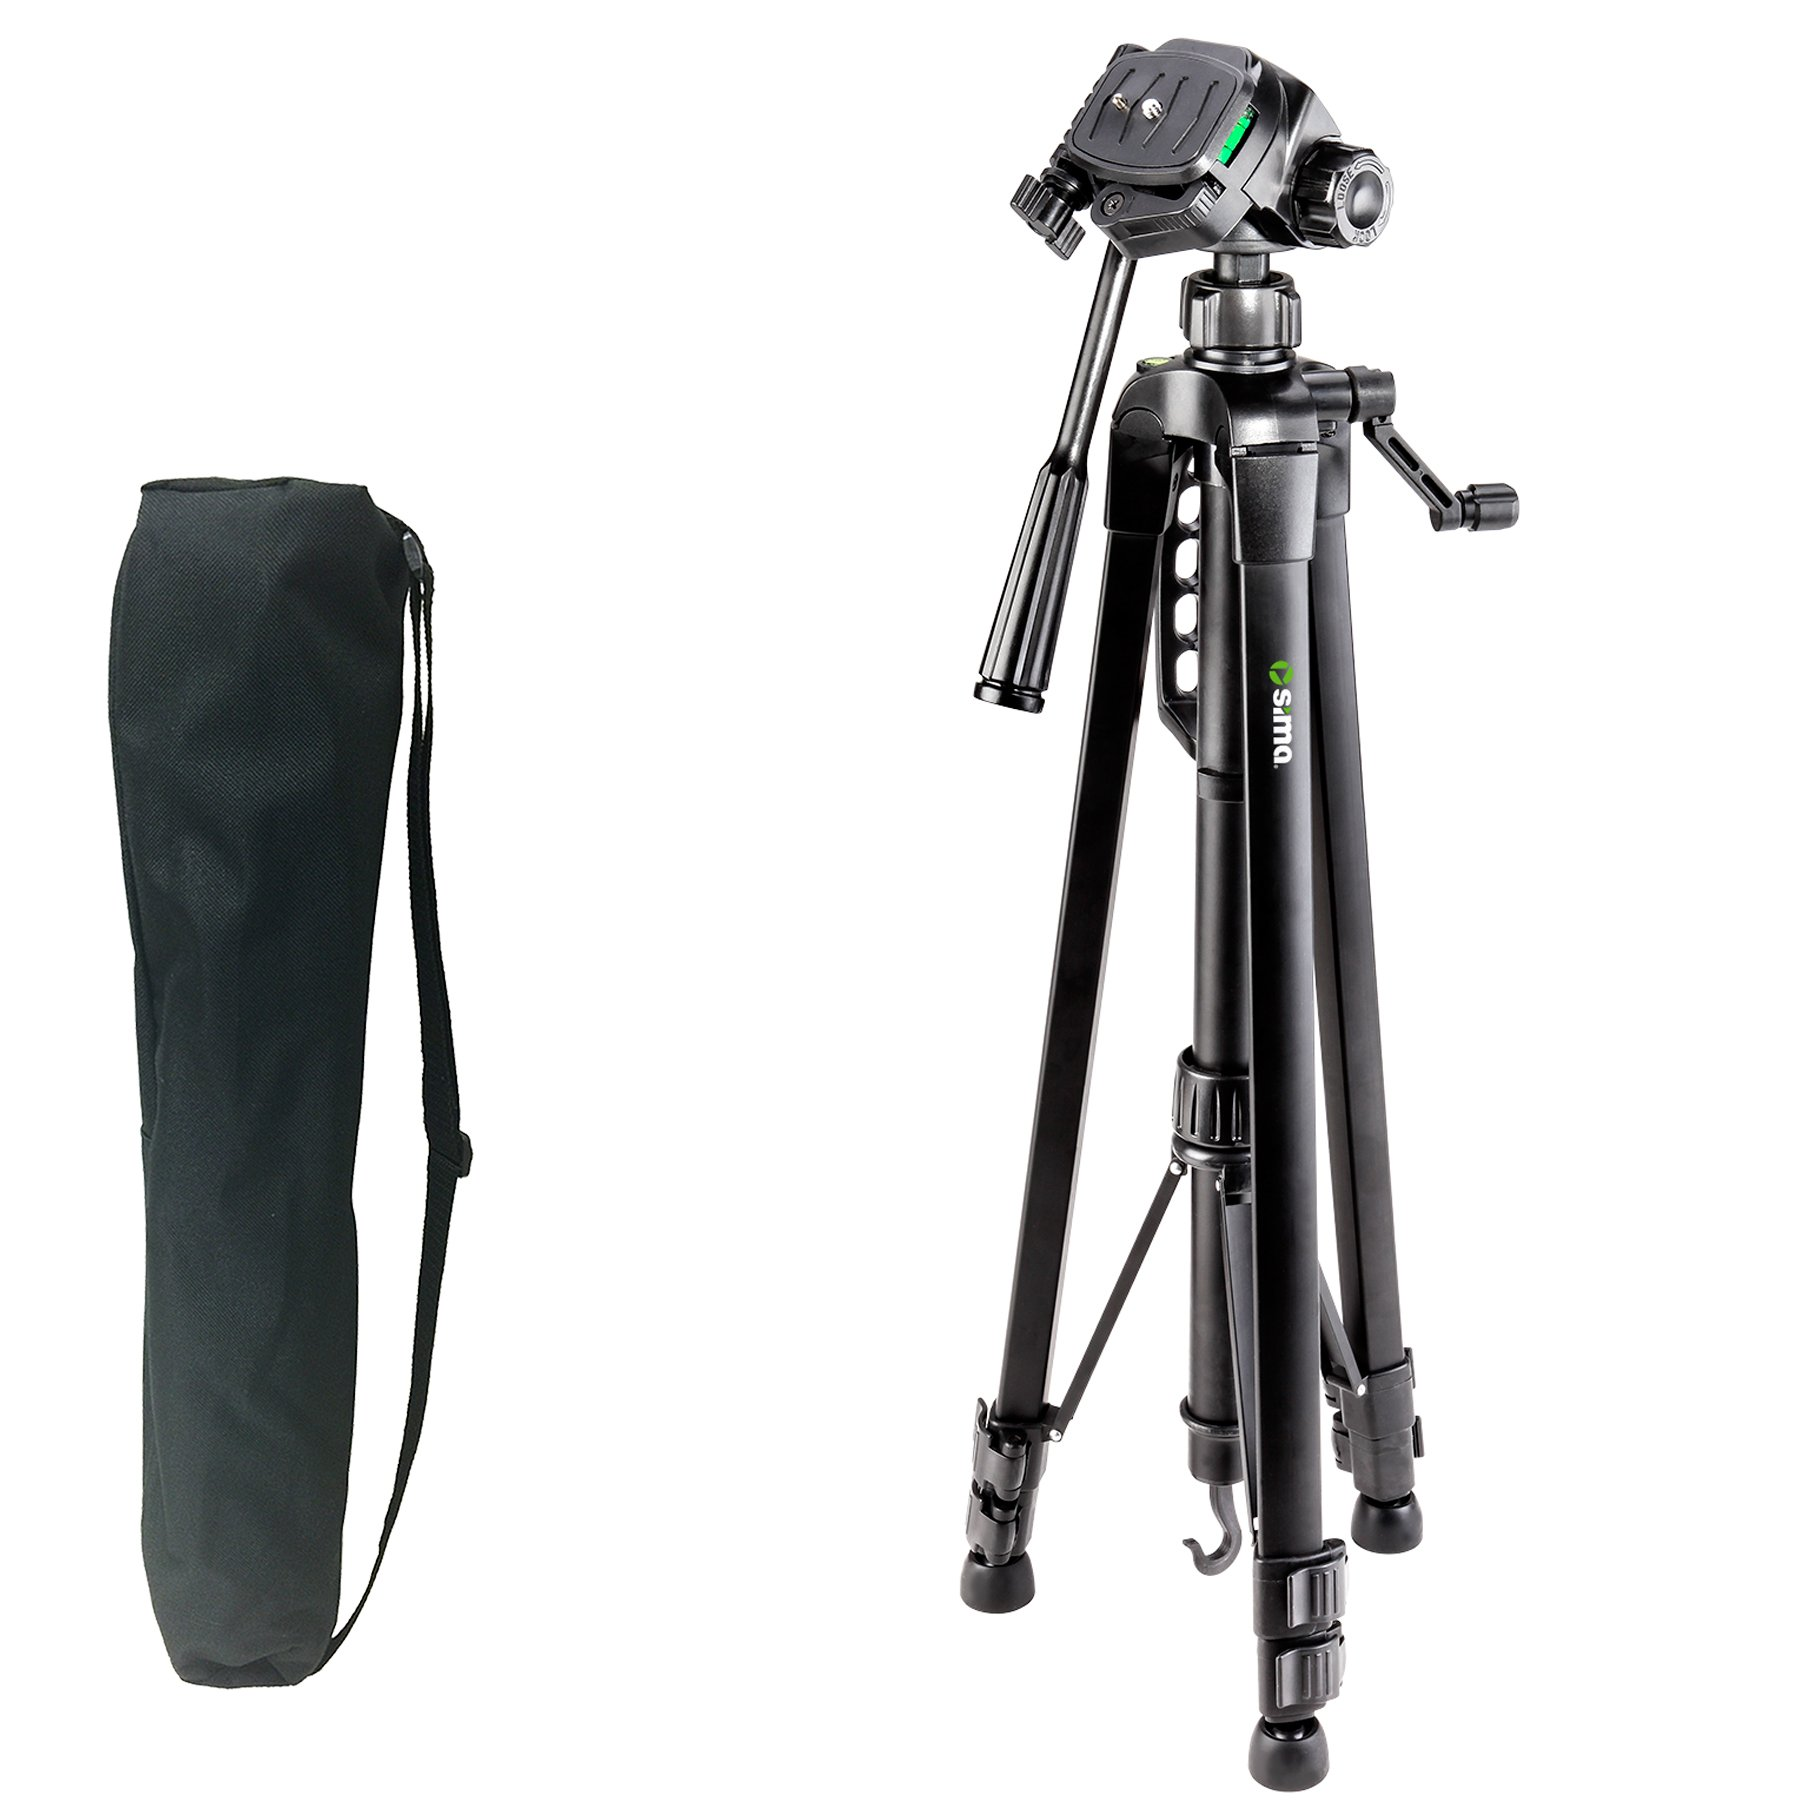 Sima STV-66K 66'' Pro Panorama Tripod Includes Zippered Carry Bag with Carry Strap